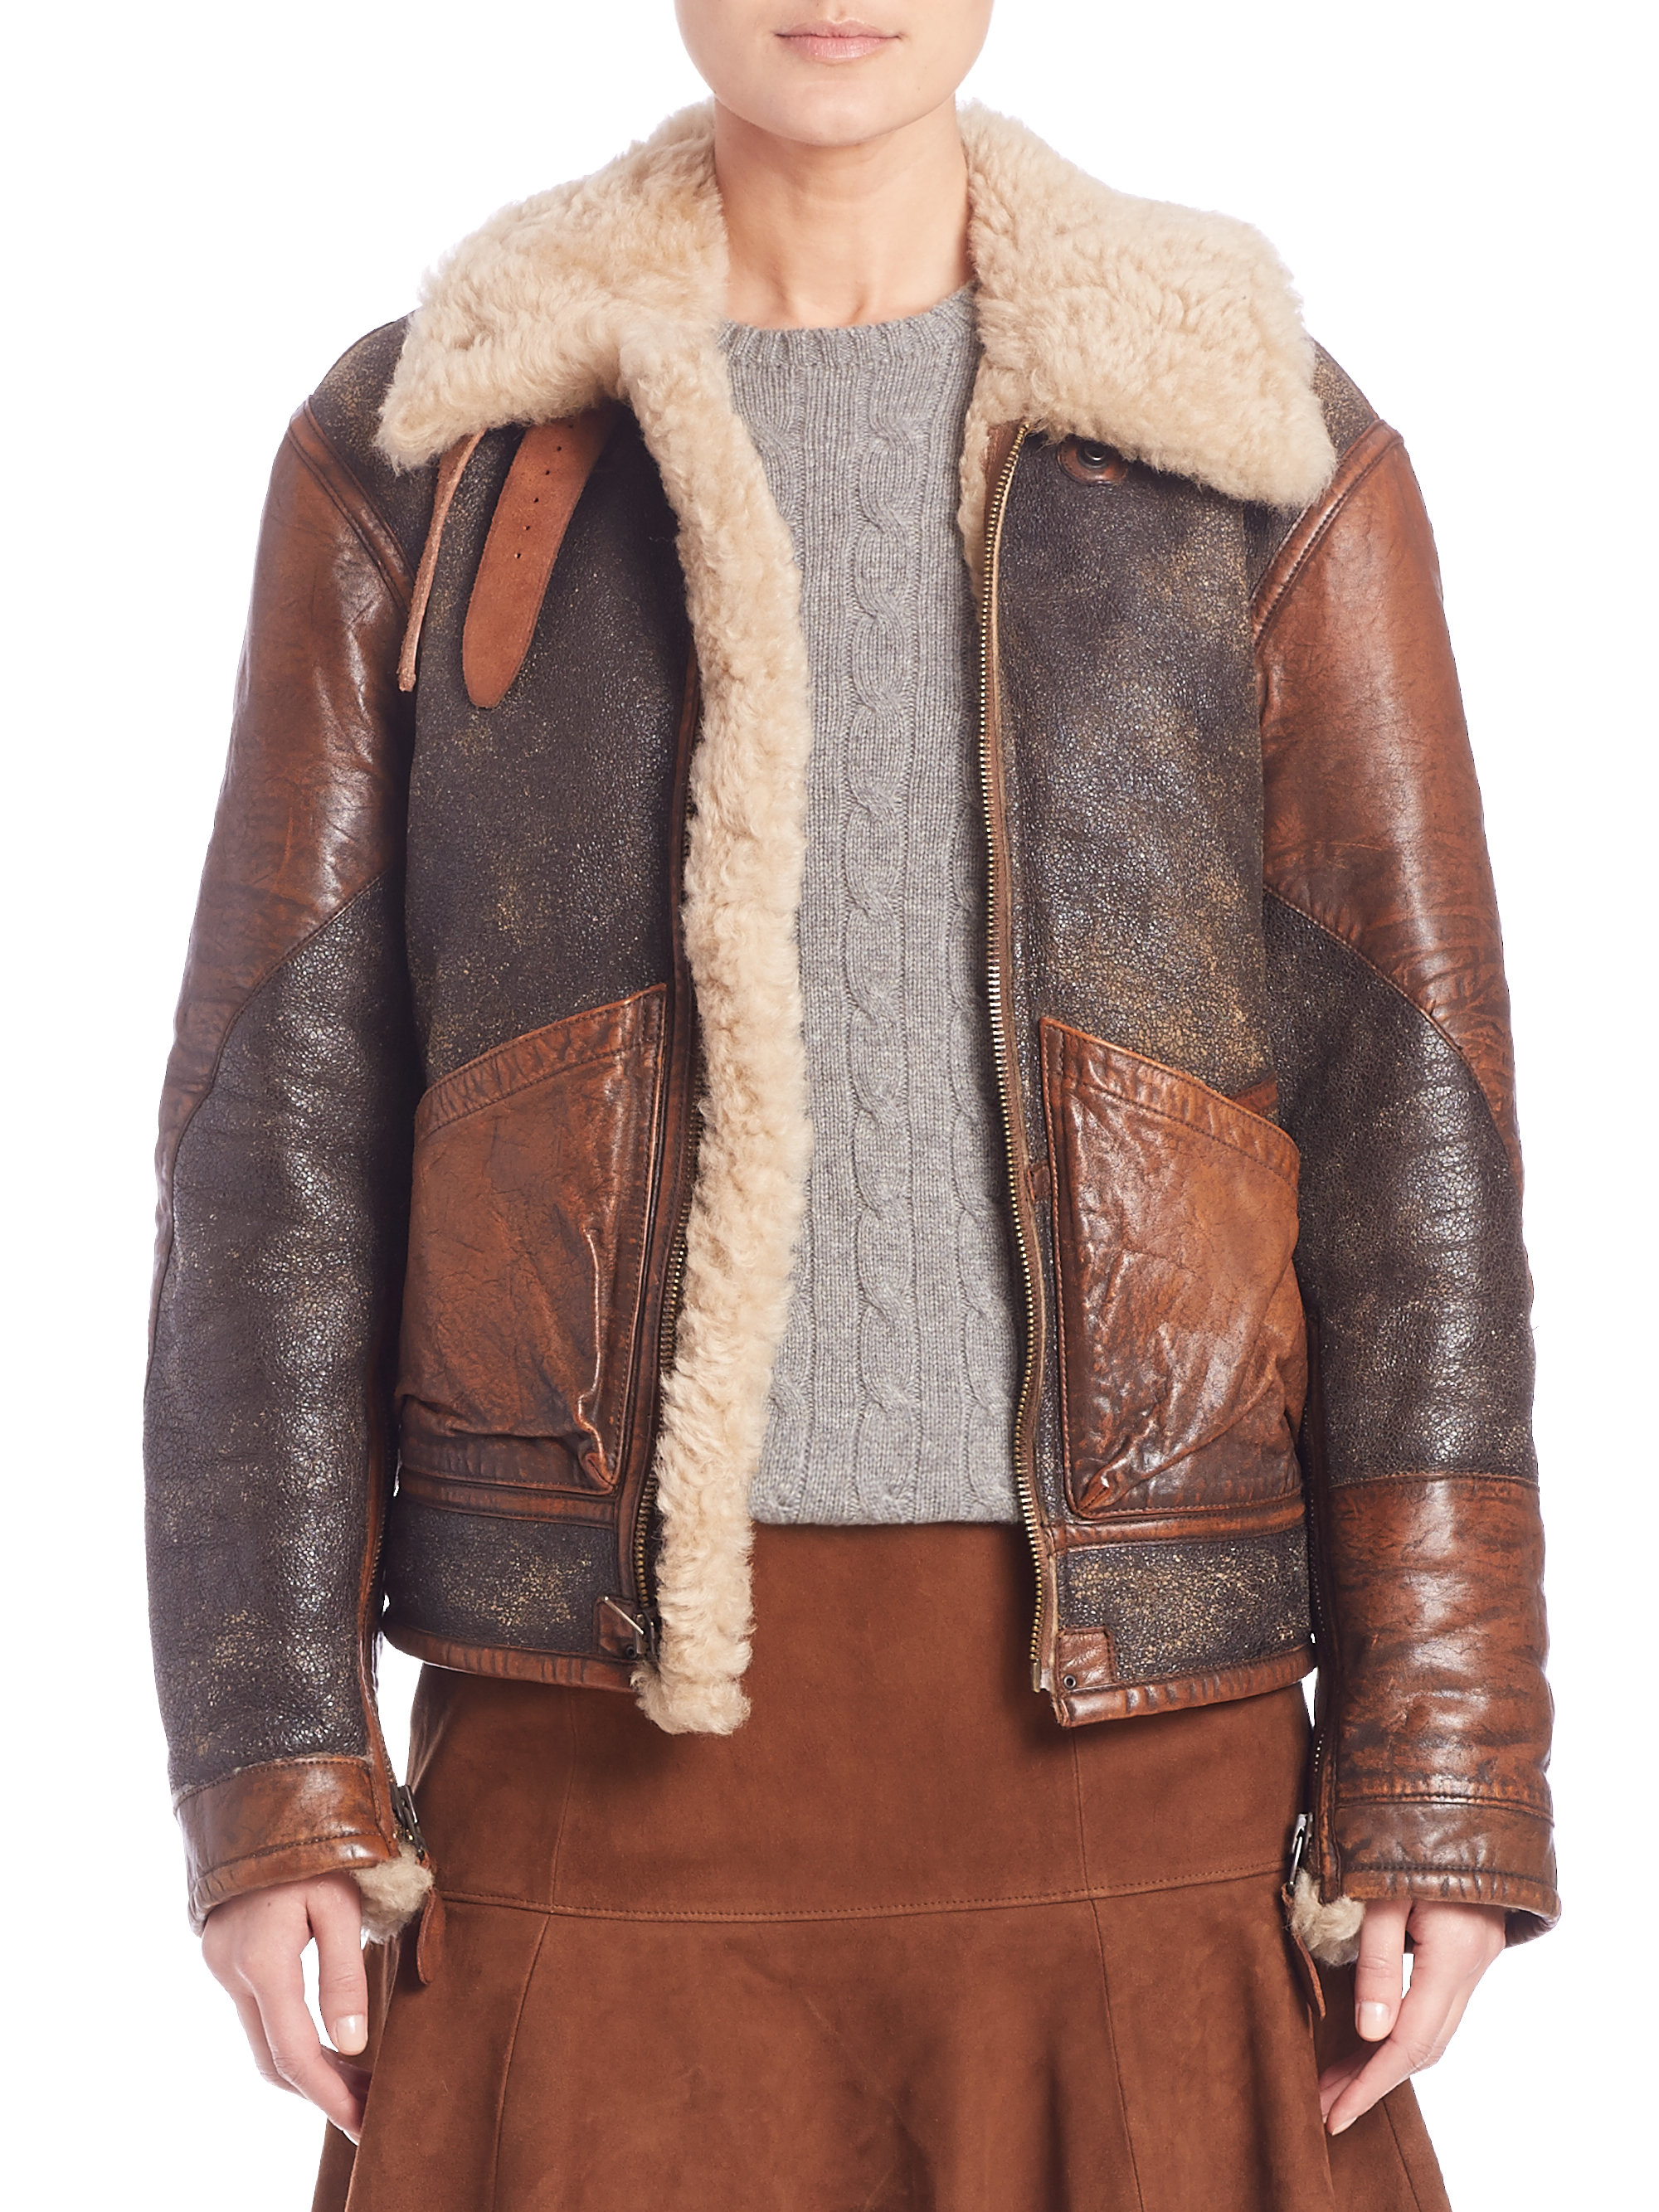 Lyst - Polo Ralph Lauren Shearling Bomber Jacket in Brown 8366a44dc899b